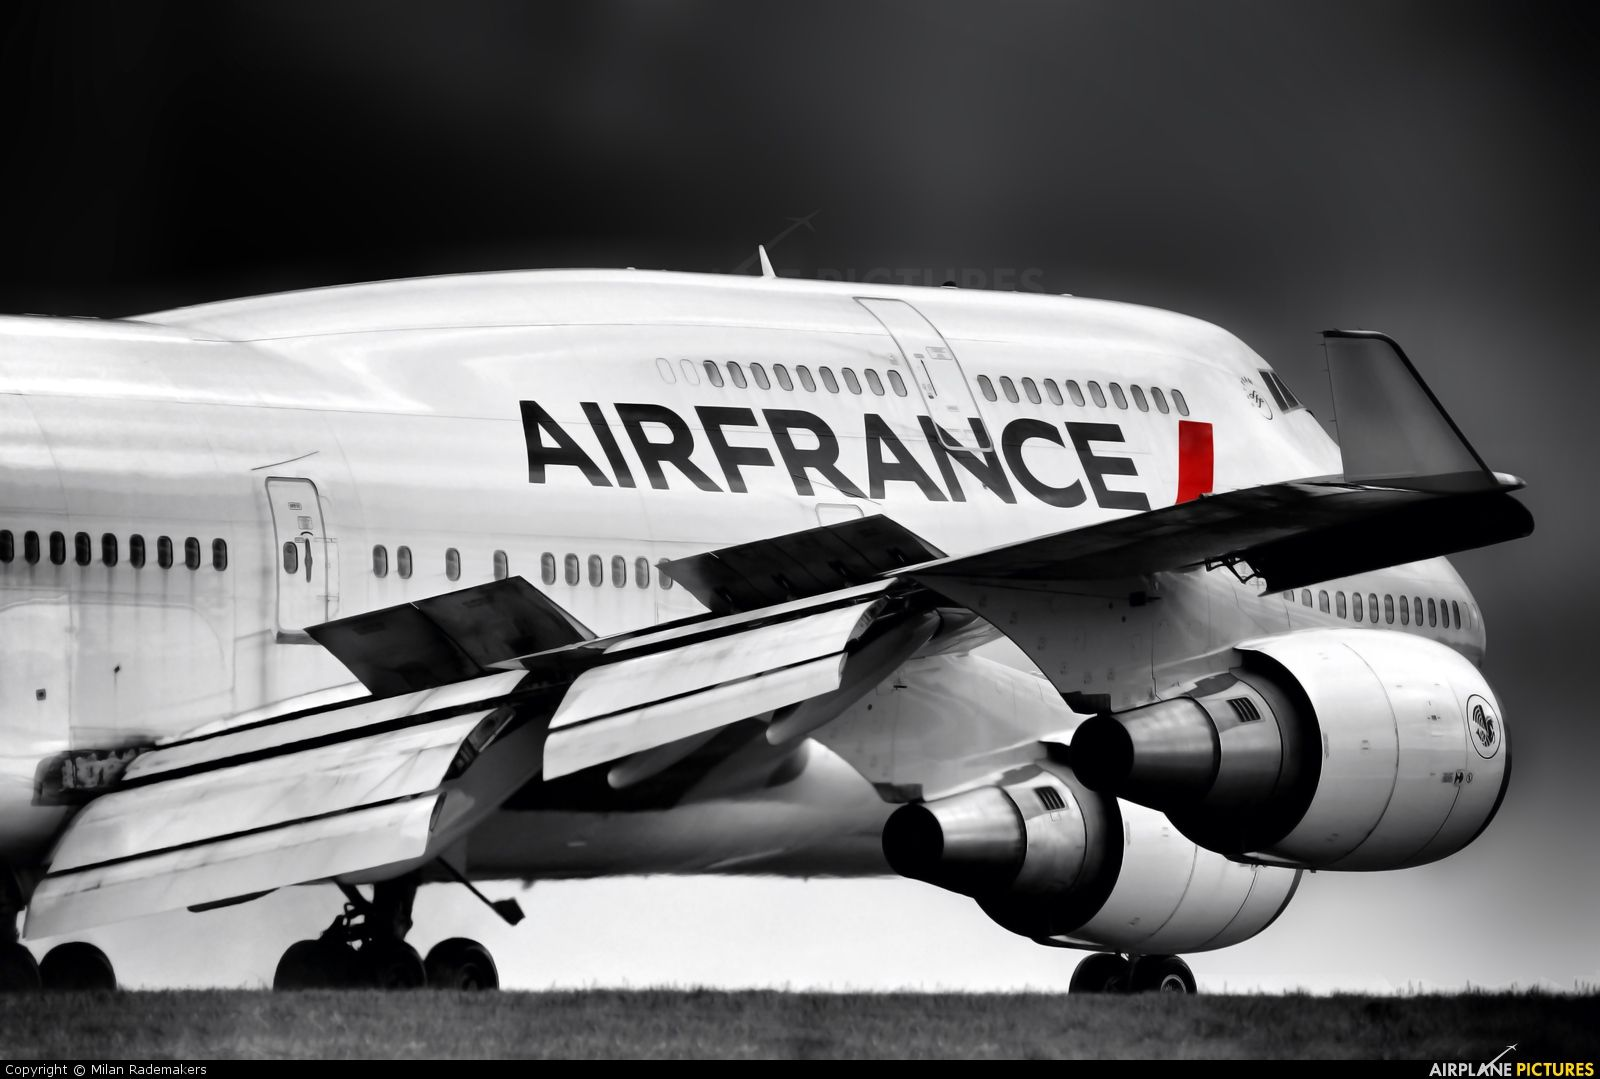 Air France Boeing 747 400 Photo By Milan Rademakers Air France Boeing 747 400 Boeing